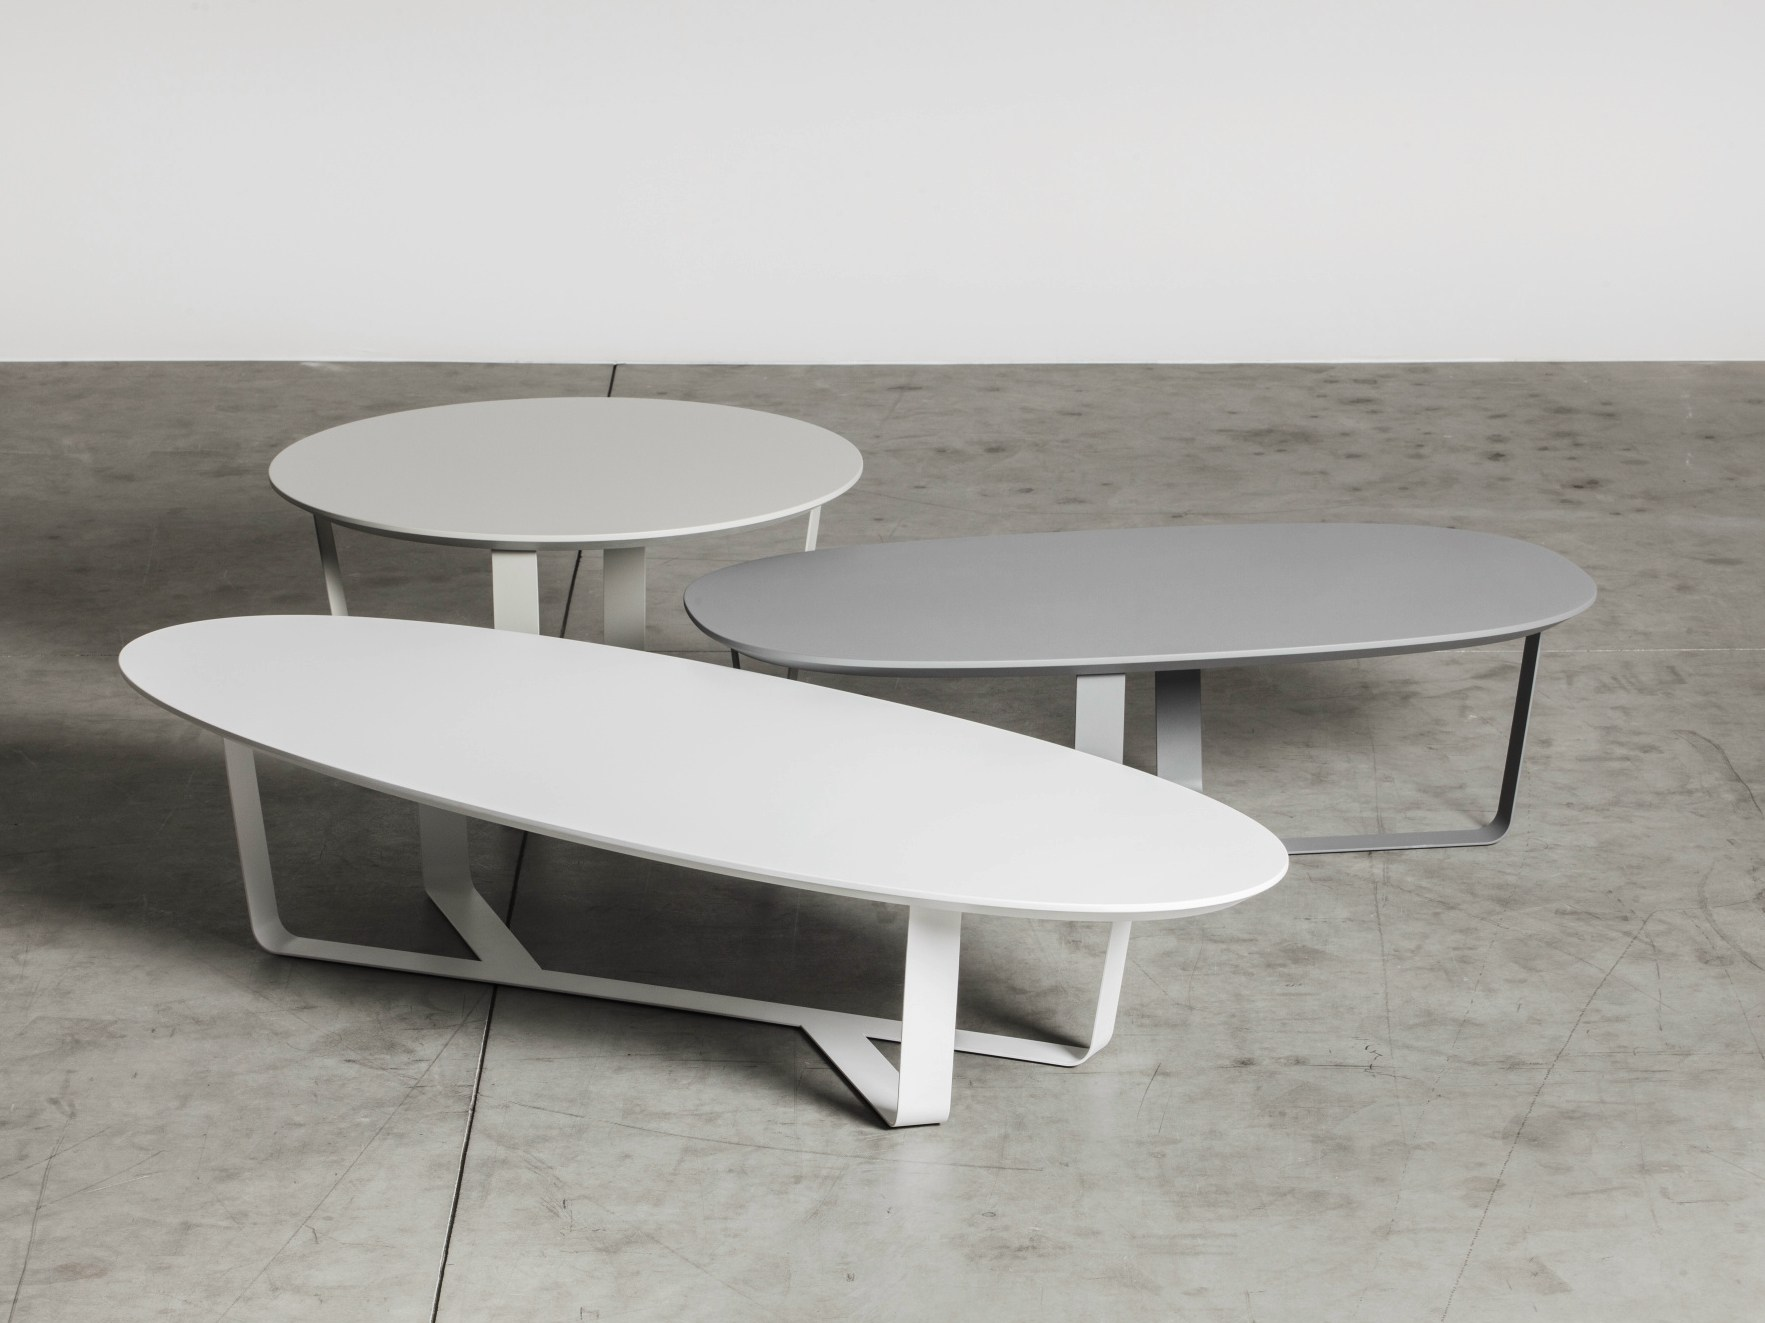 Oval Outdoor Coffee Table Rascalartsnyc